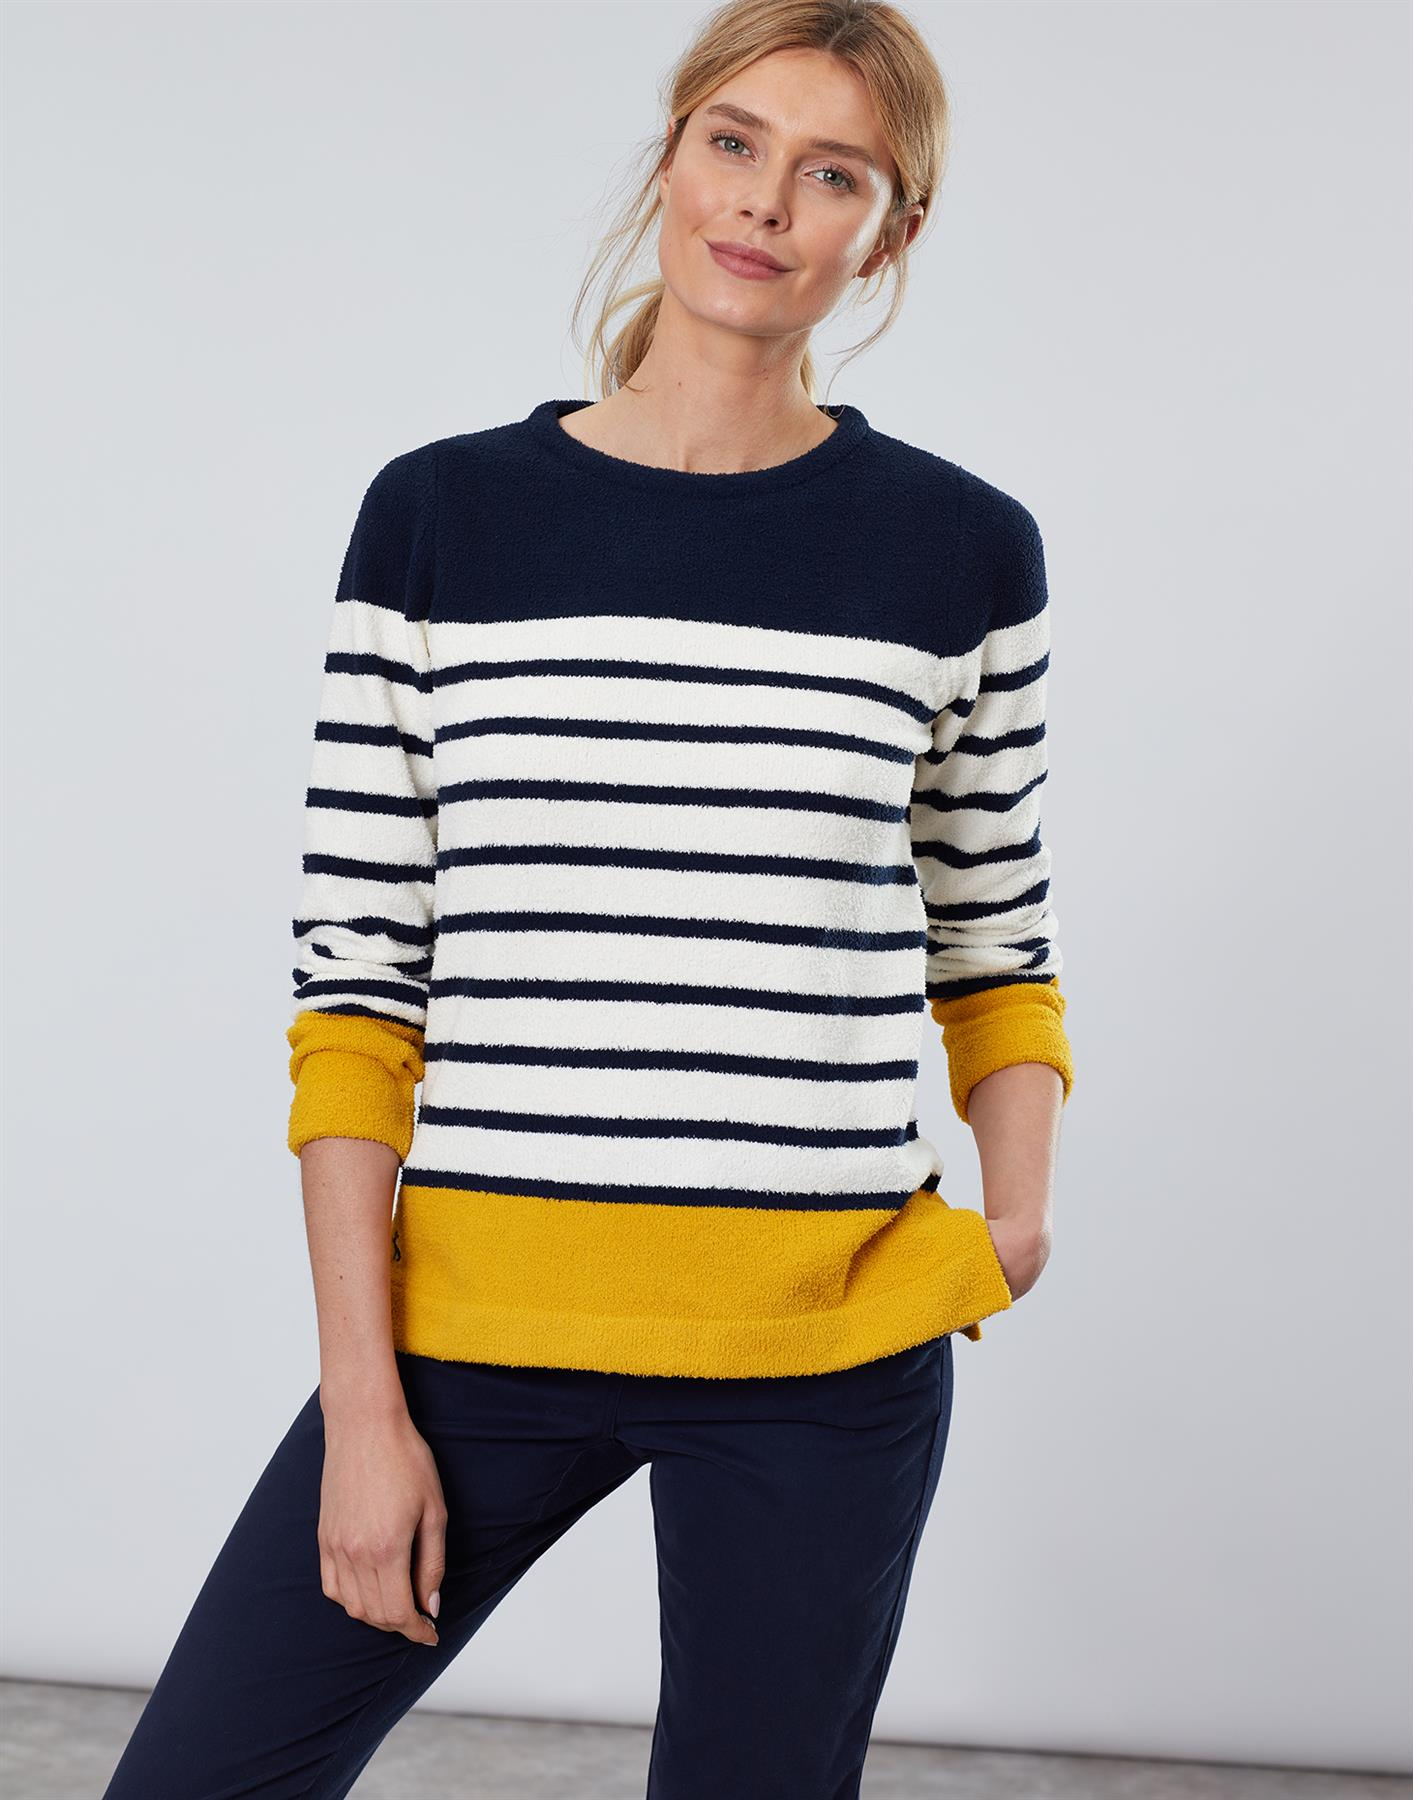 Jersey-De-Chenille-Joules-Para-Mujer-Seaham-Suave-AW19 miniatura 9